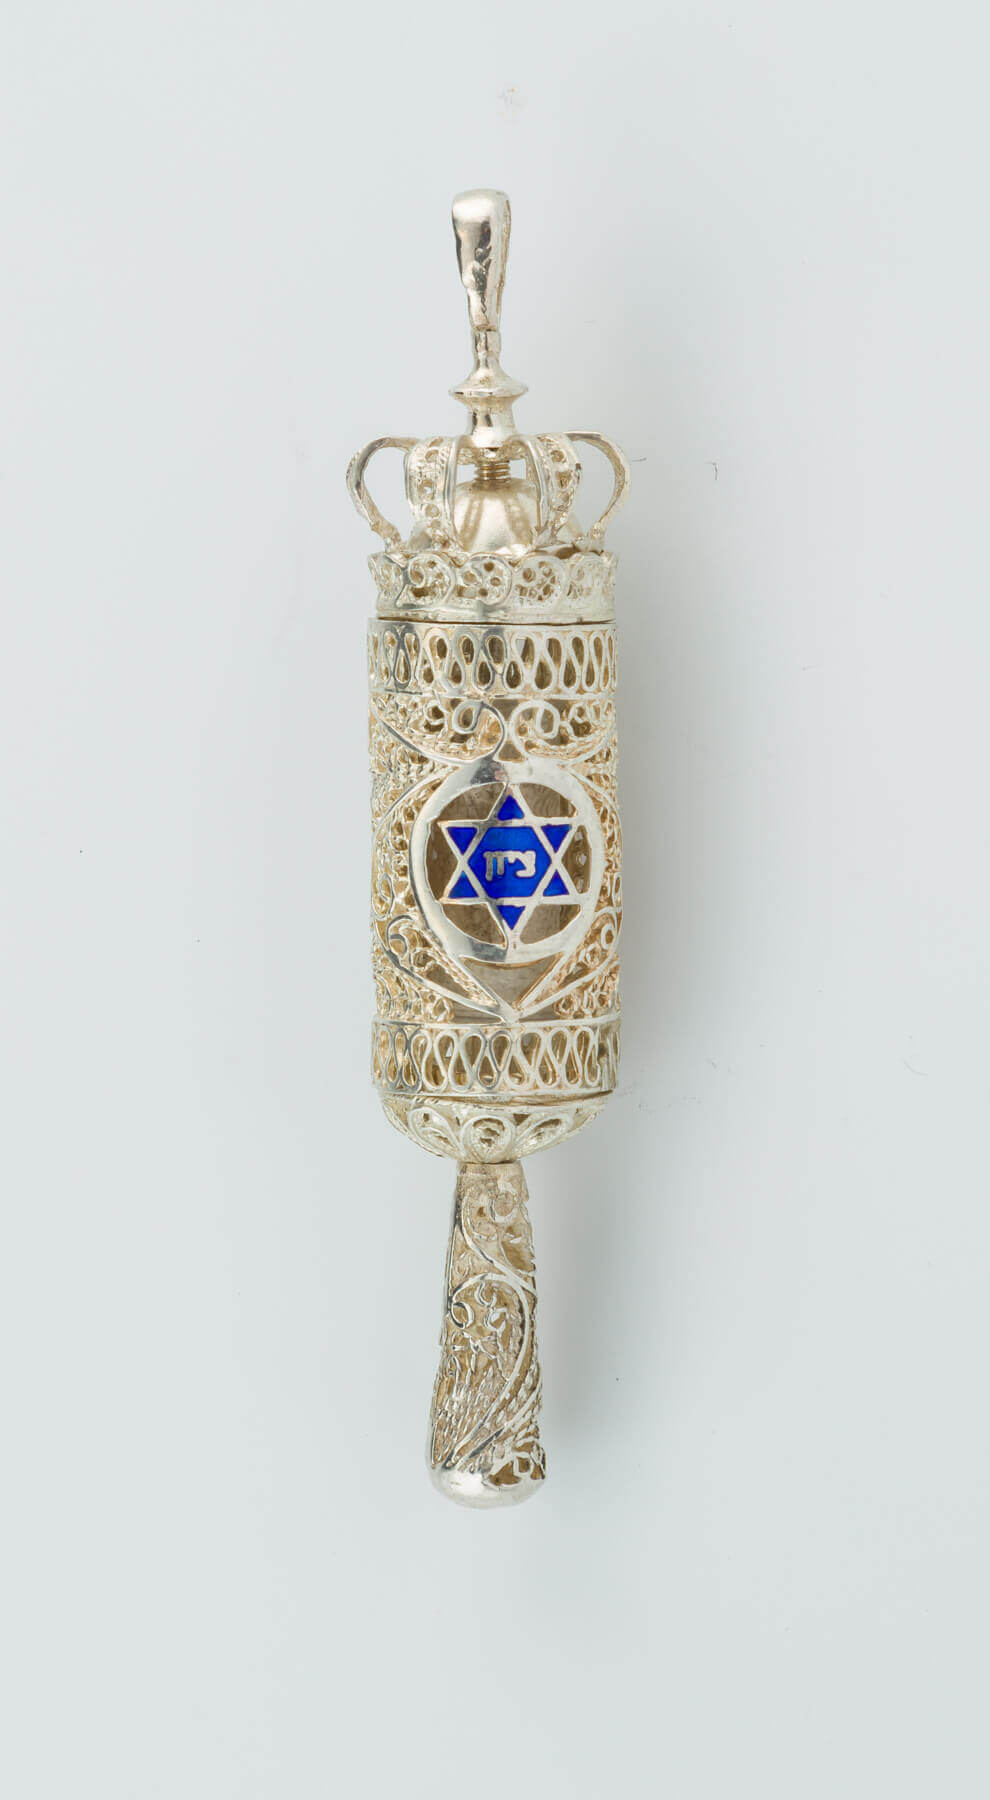 174. A MINIATURE SILVER FILIGREE MEGILLAH CASE